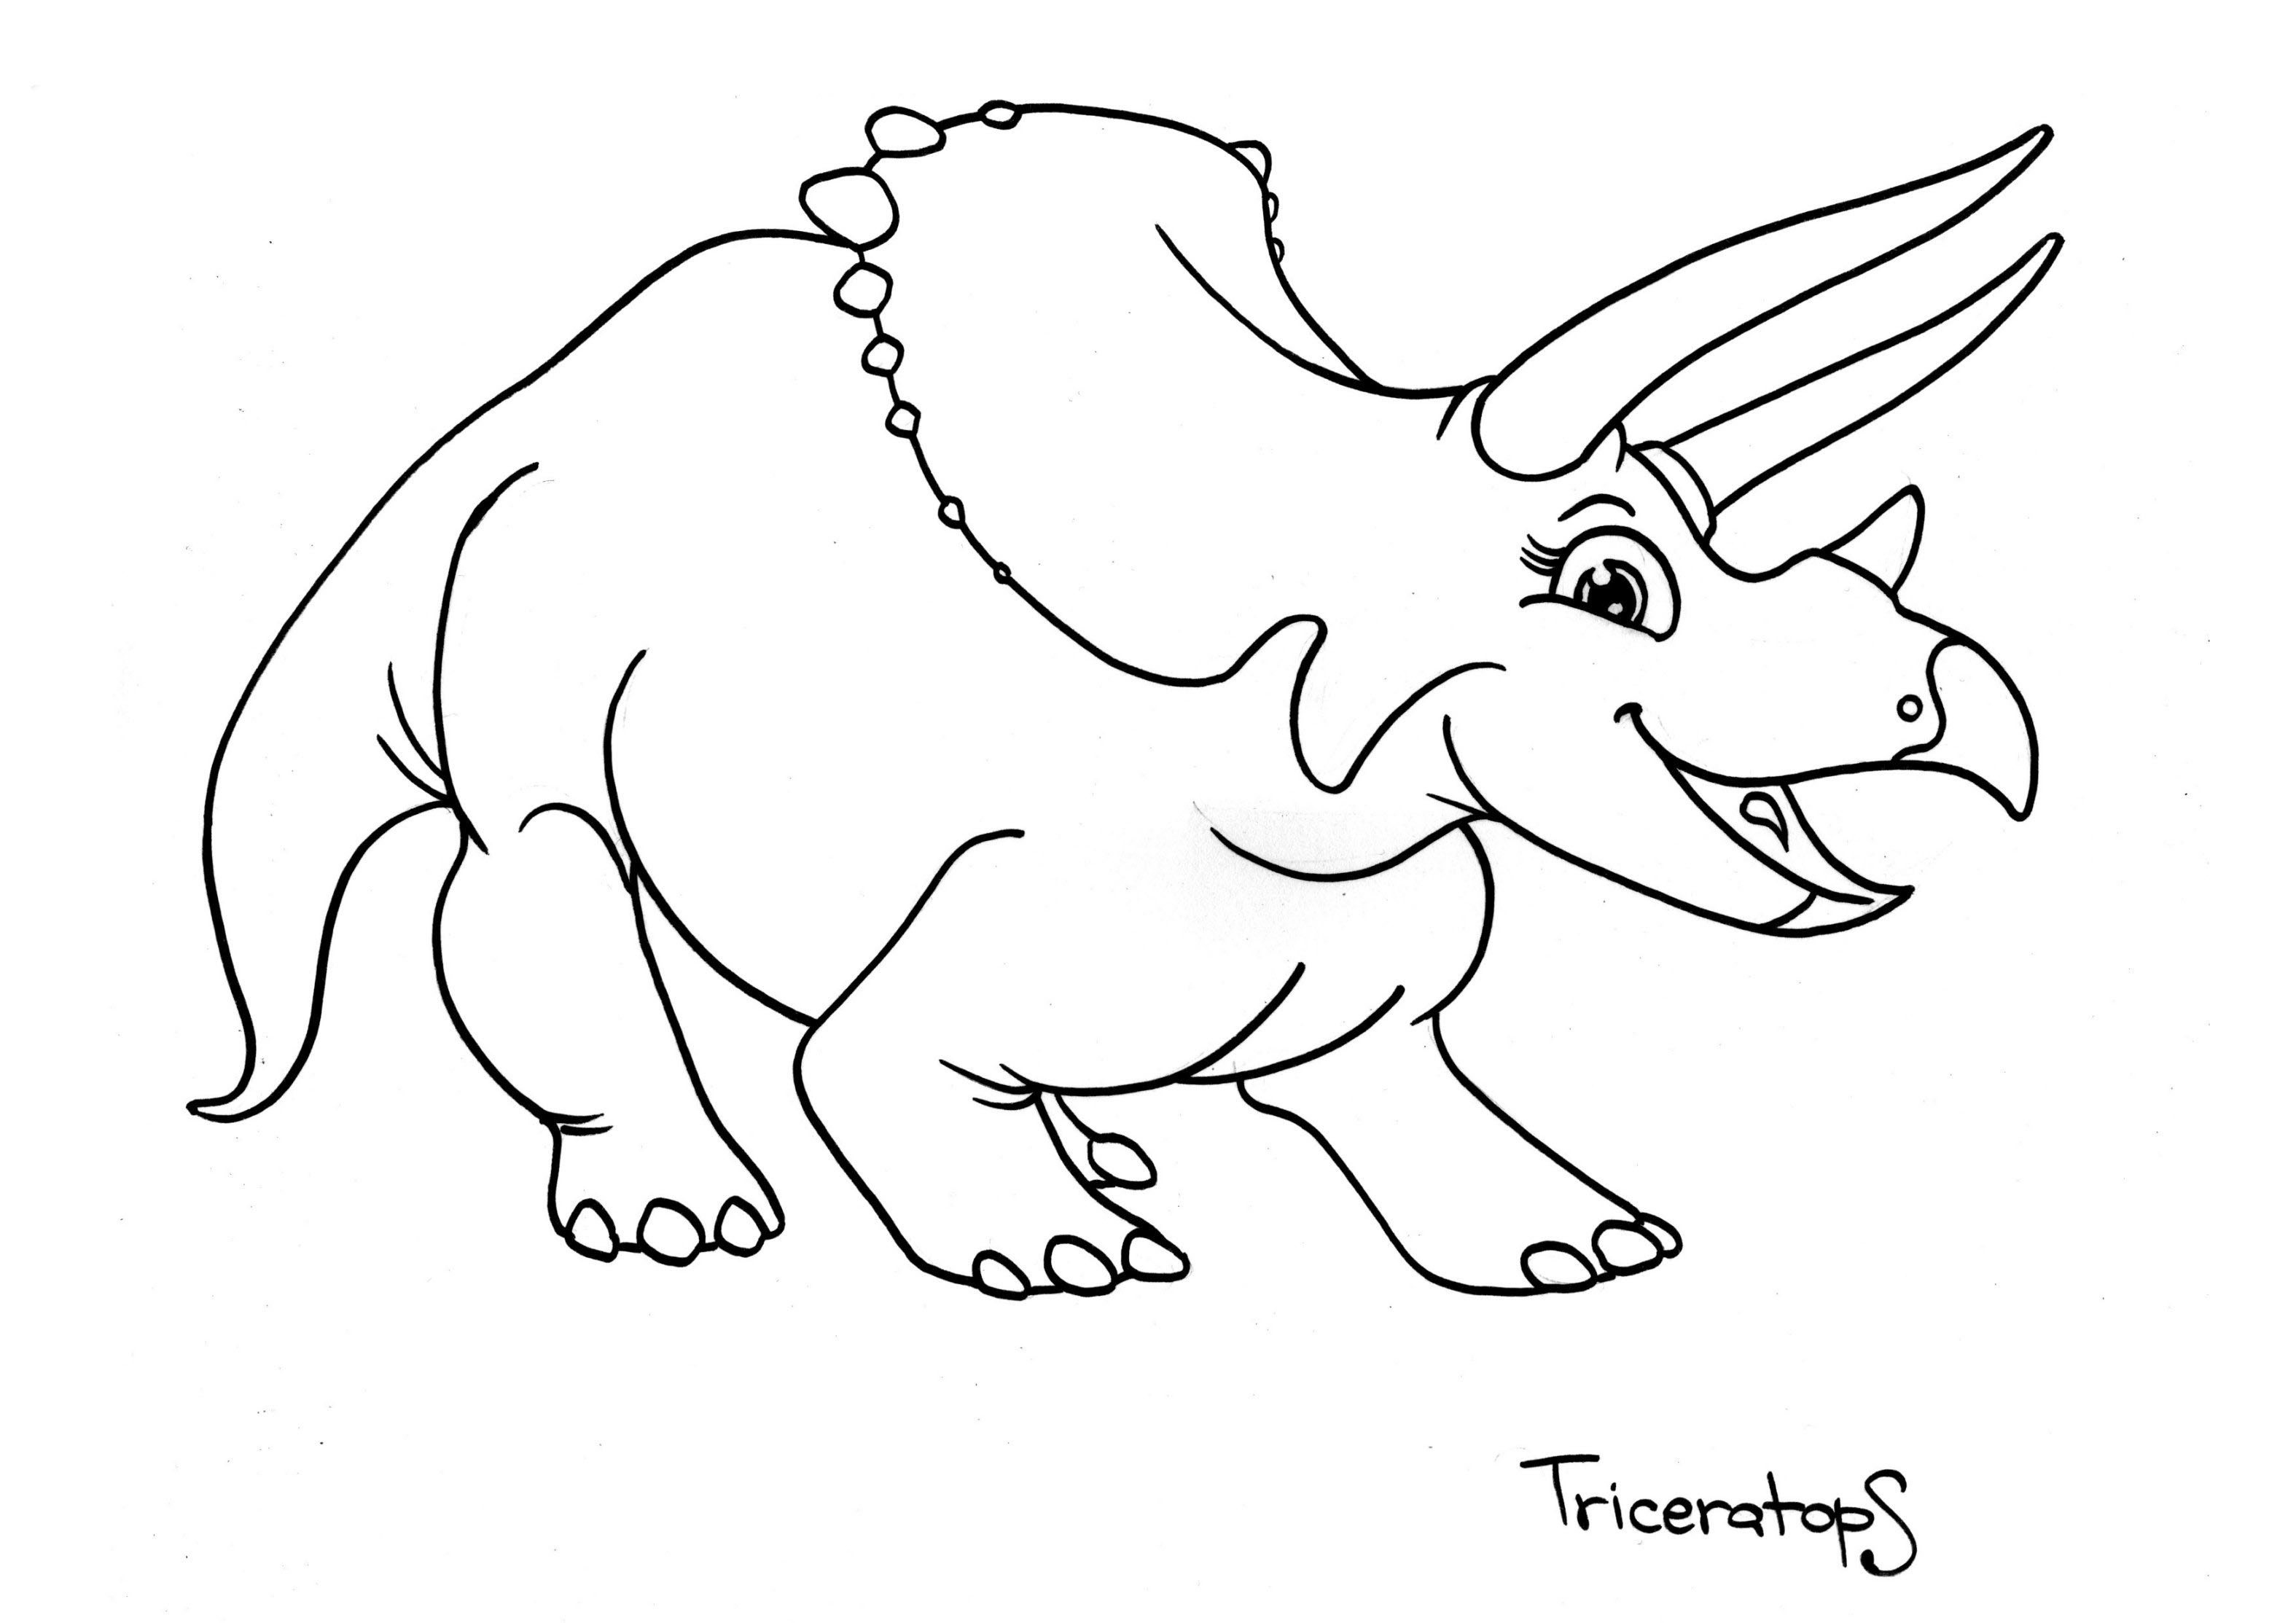 dinosaur print out coloring pages coloring pages dinosaur free printable coloring pages print pages dinosaur coloring out